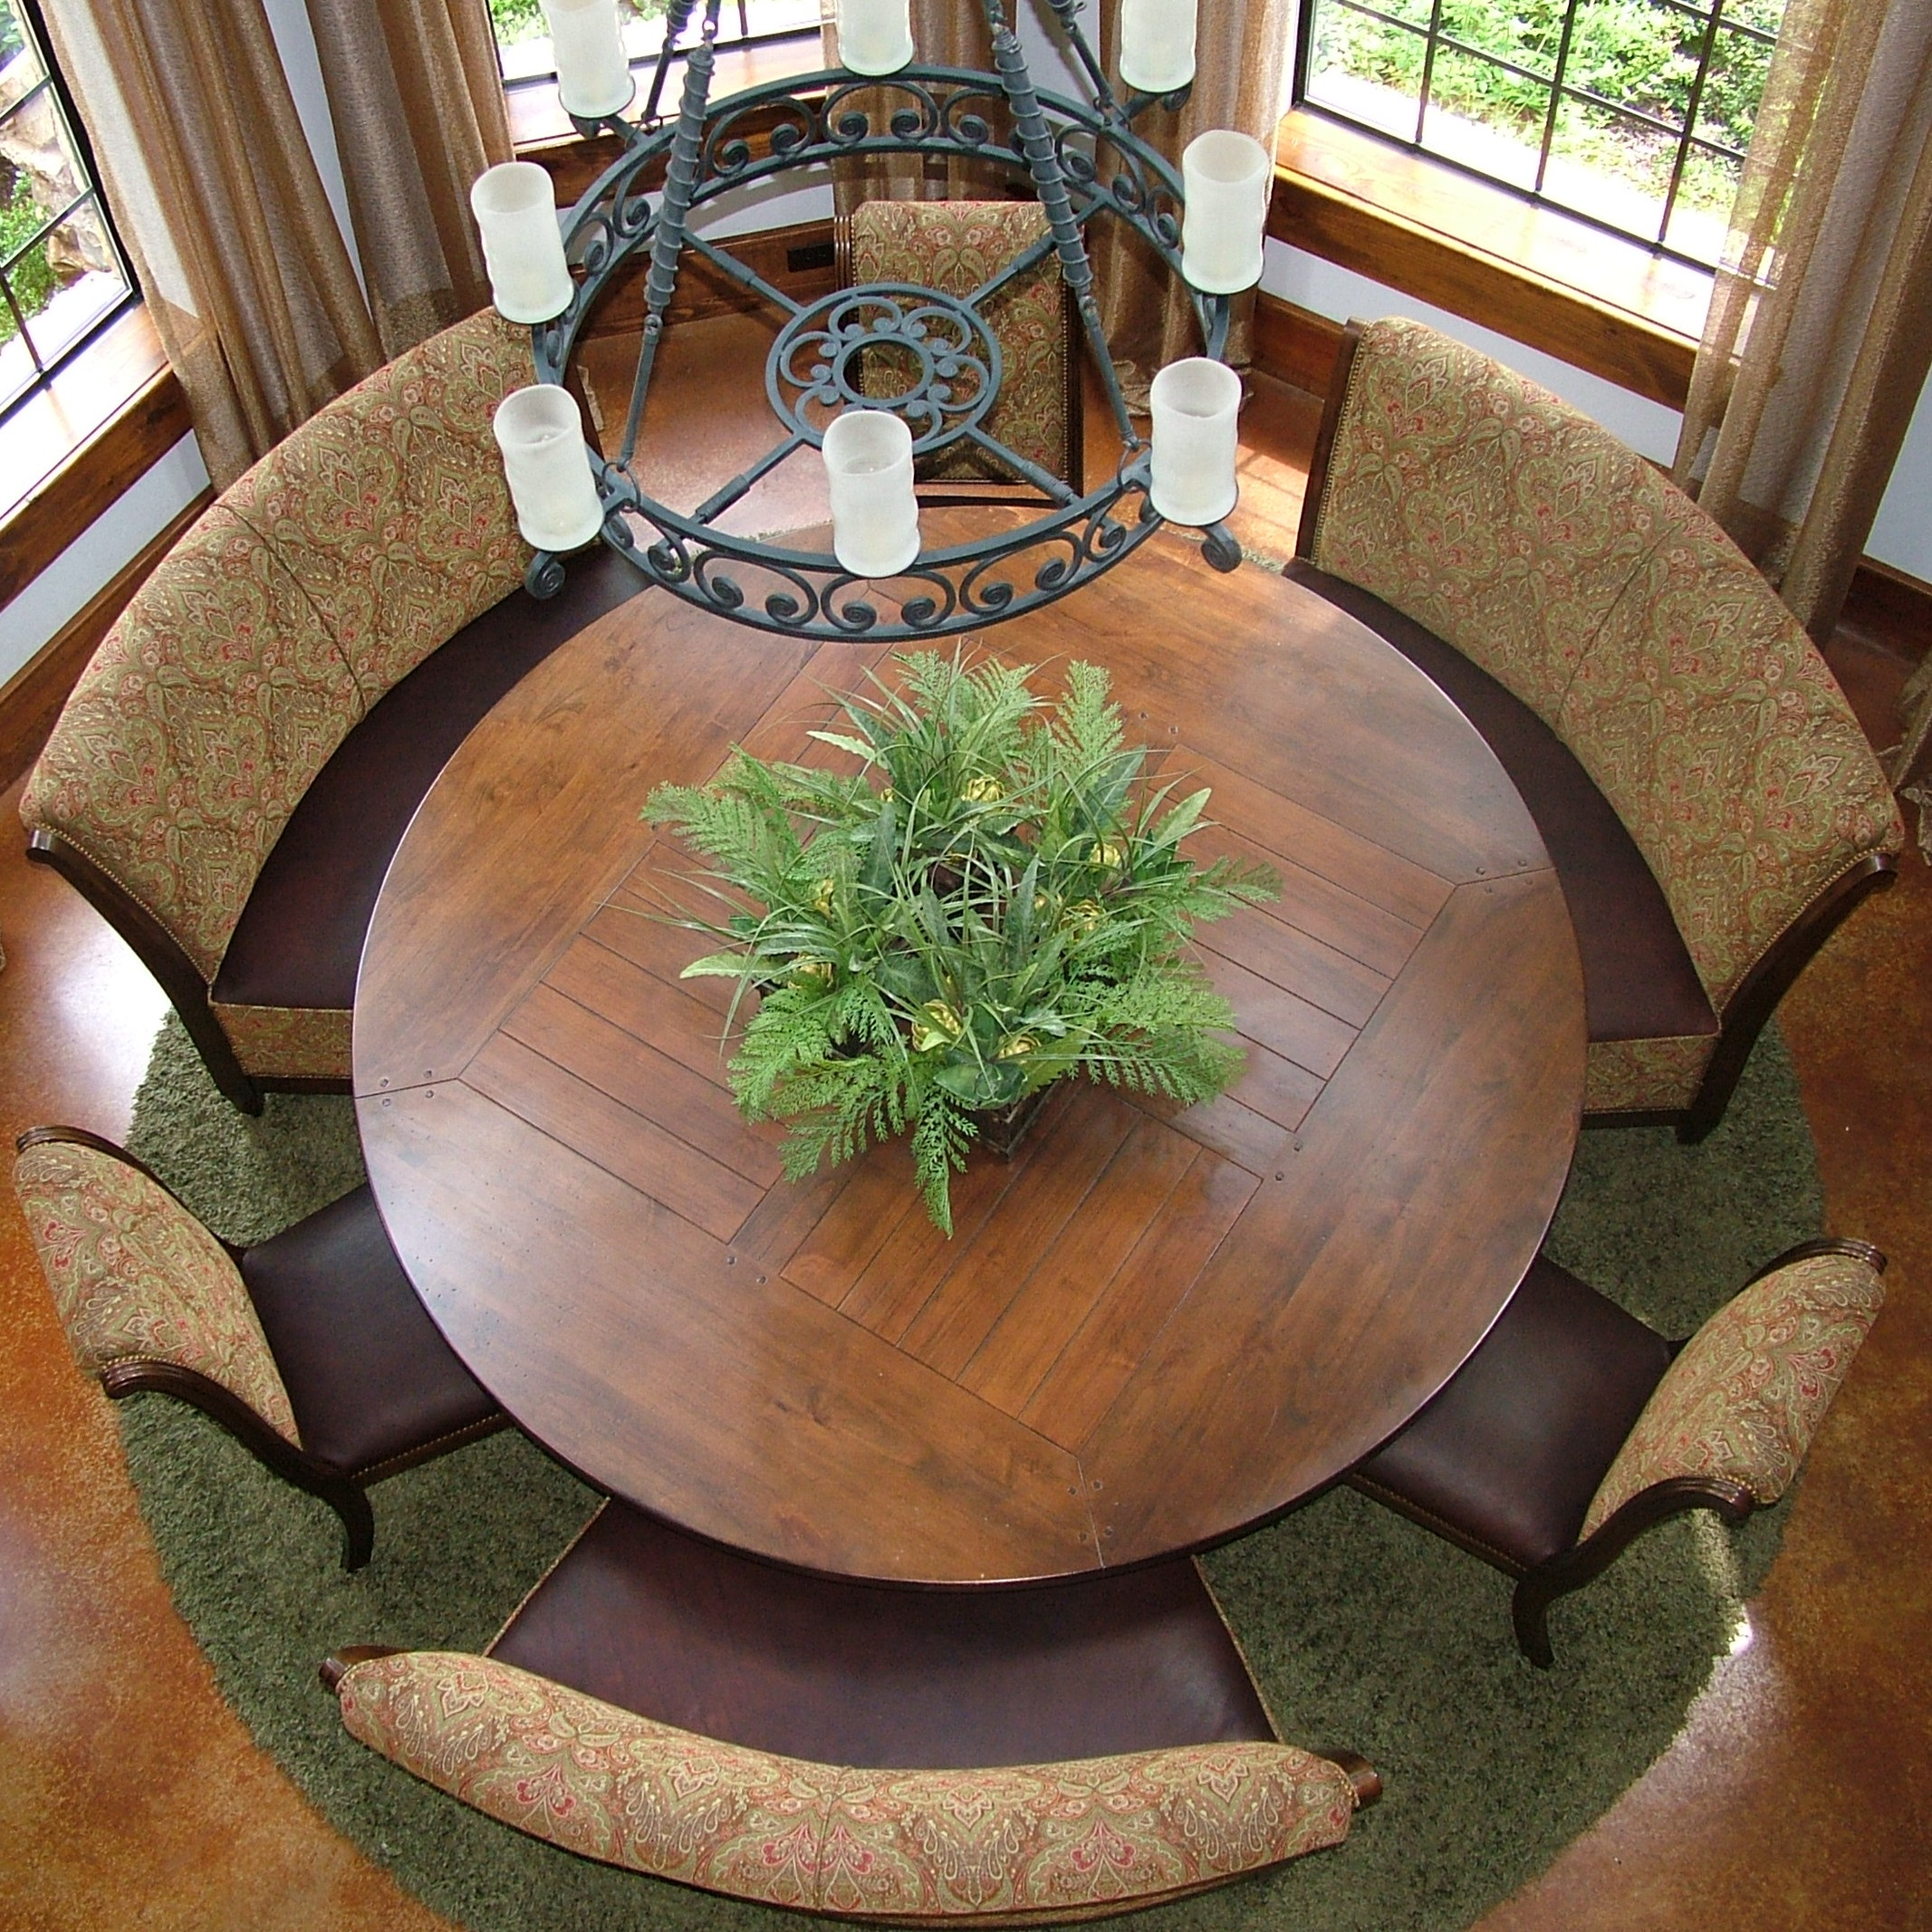 This is one of the nicest round table dining areas I've ever seen.